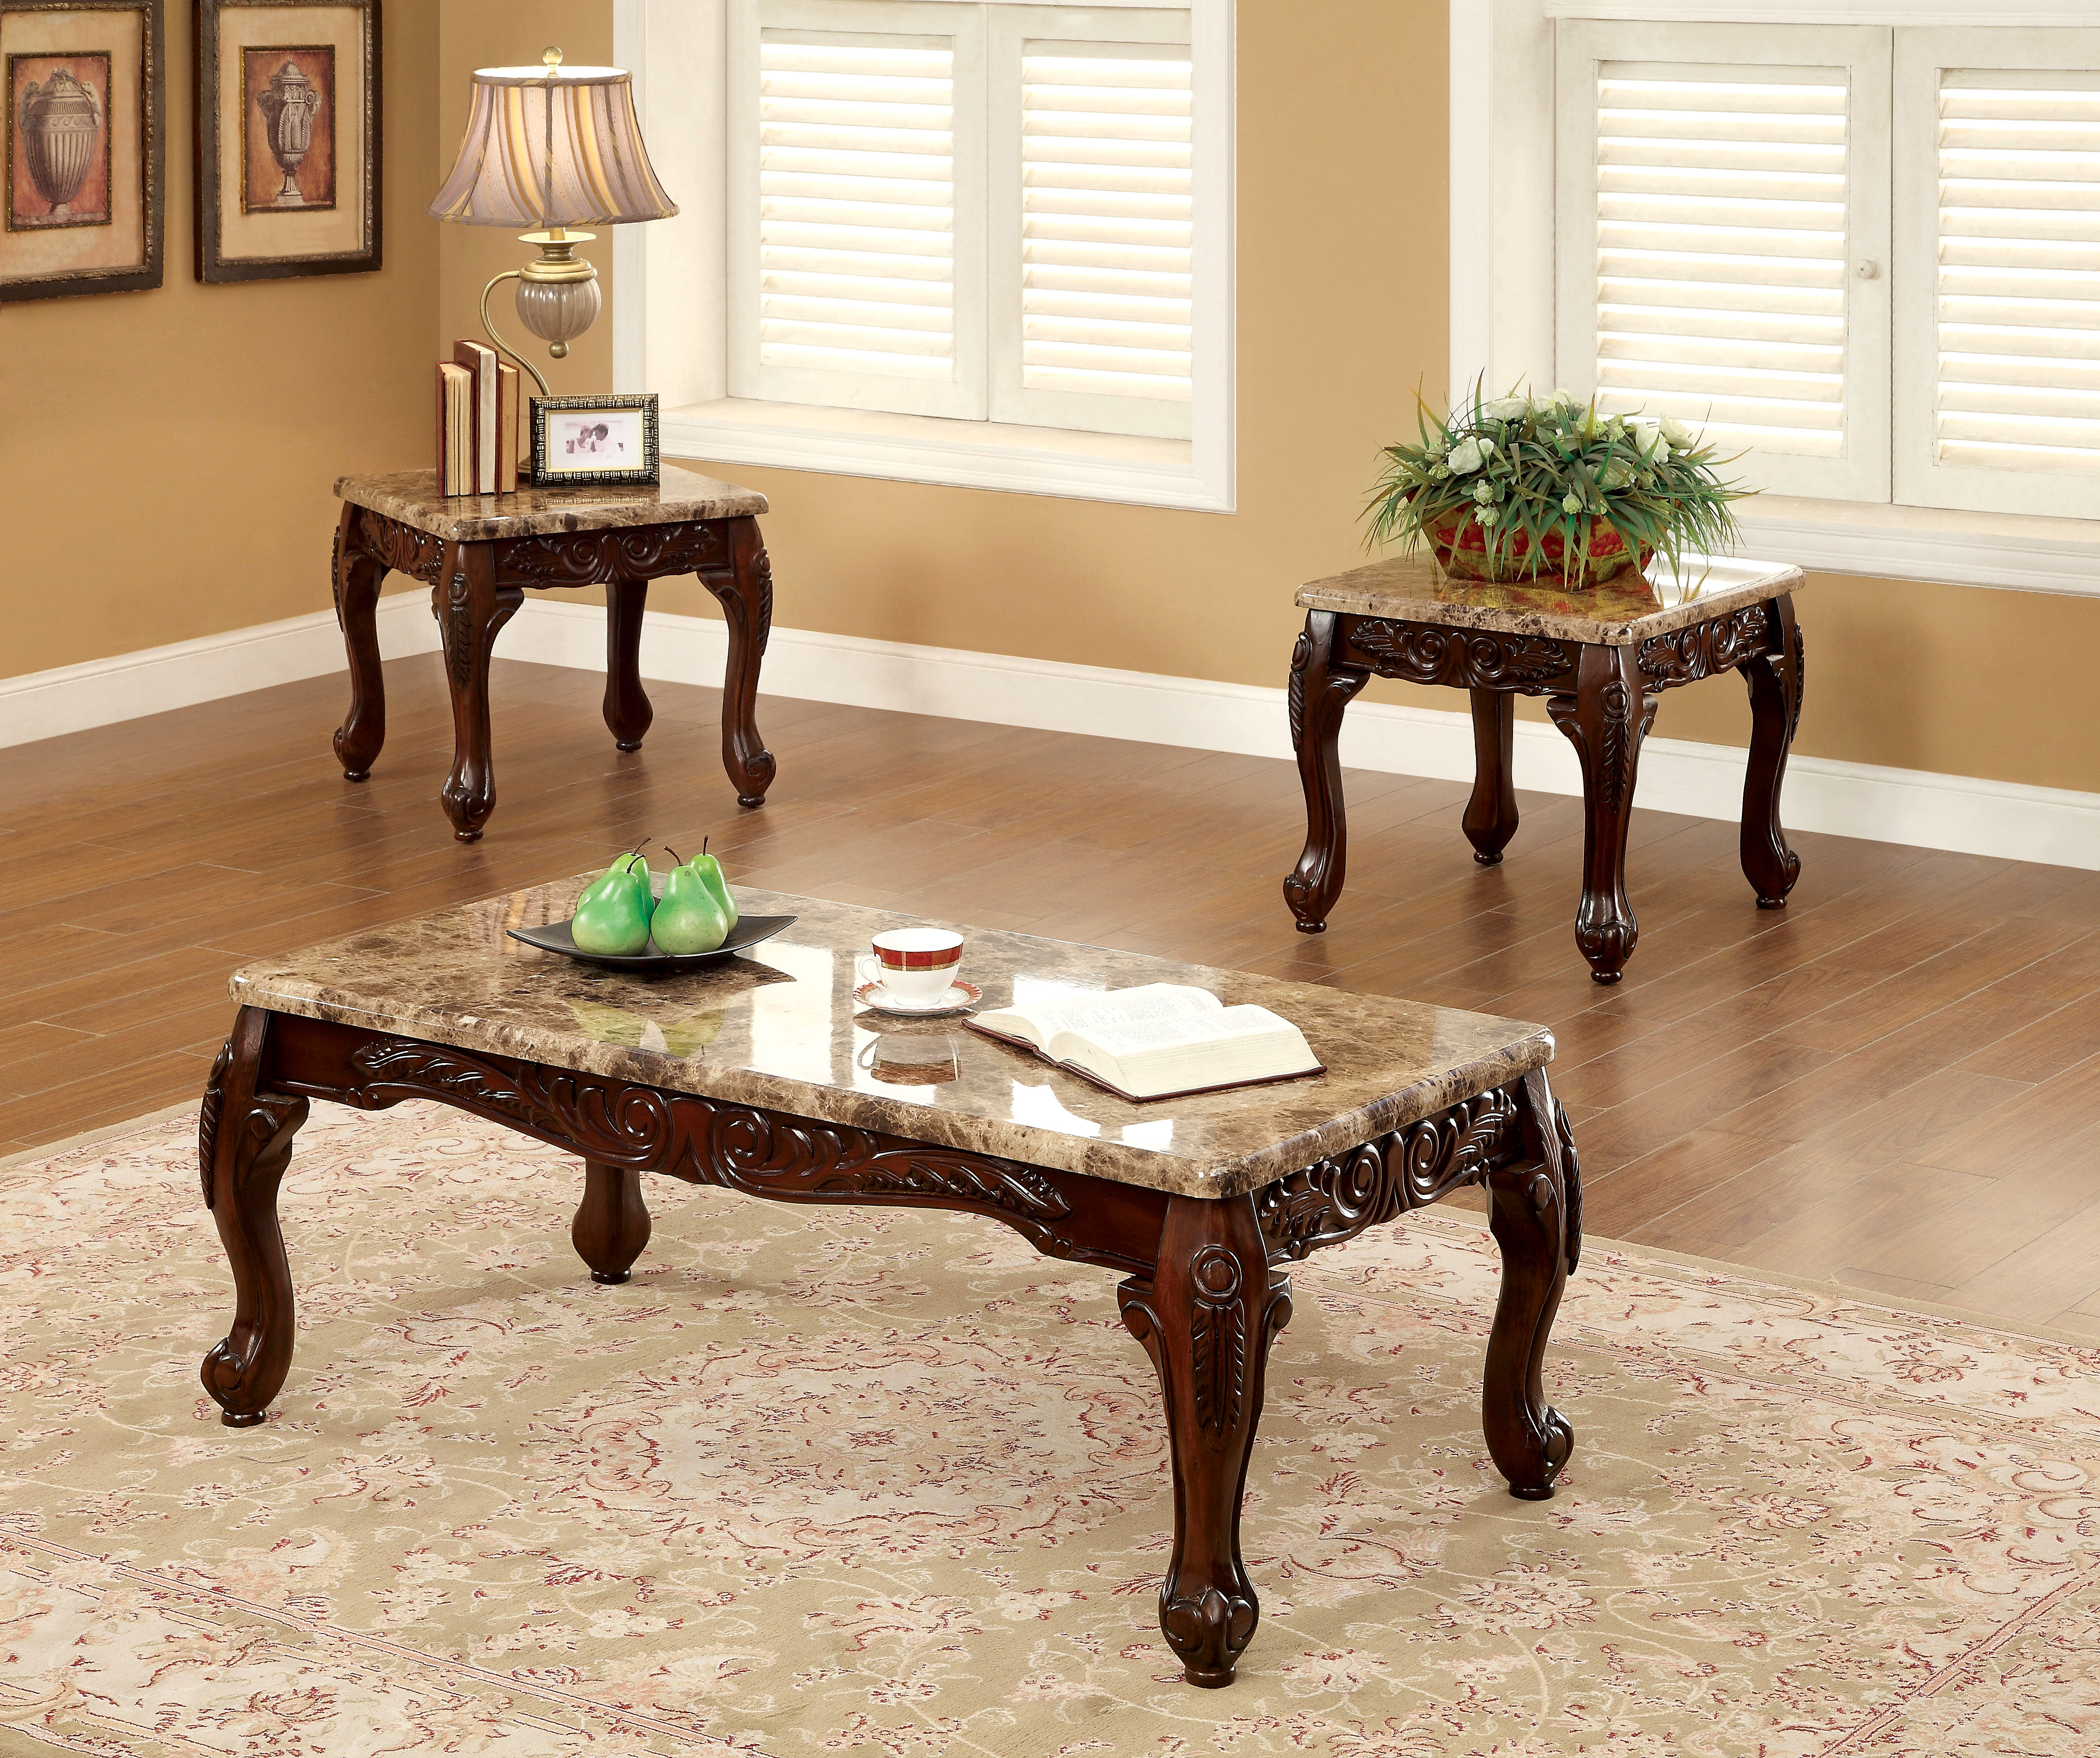 furniture america dark oak fonta piece accent table set prod living room sets brass legs white cloth tablecloths with basket drawers gold glass top coffee kroger outdoor lamp